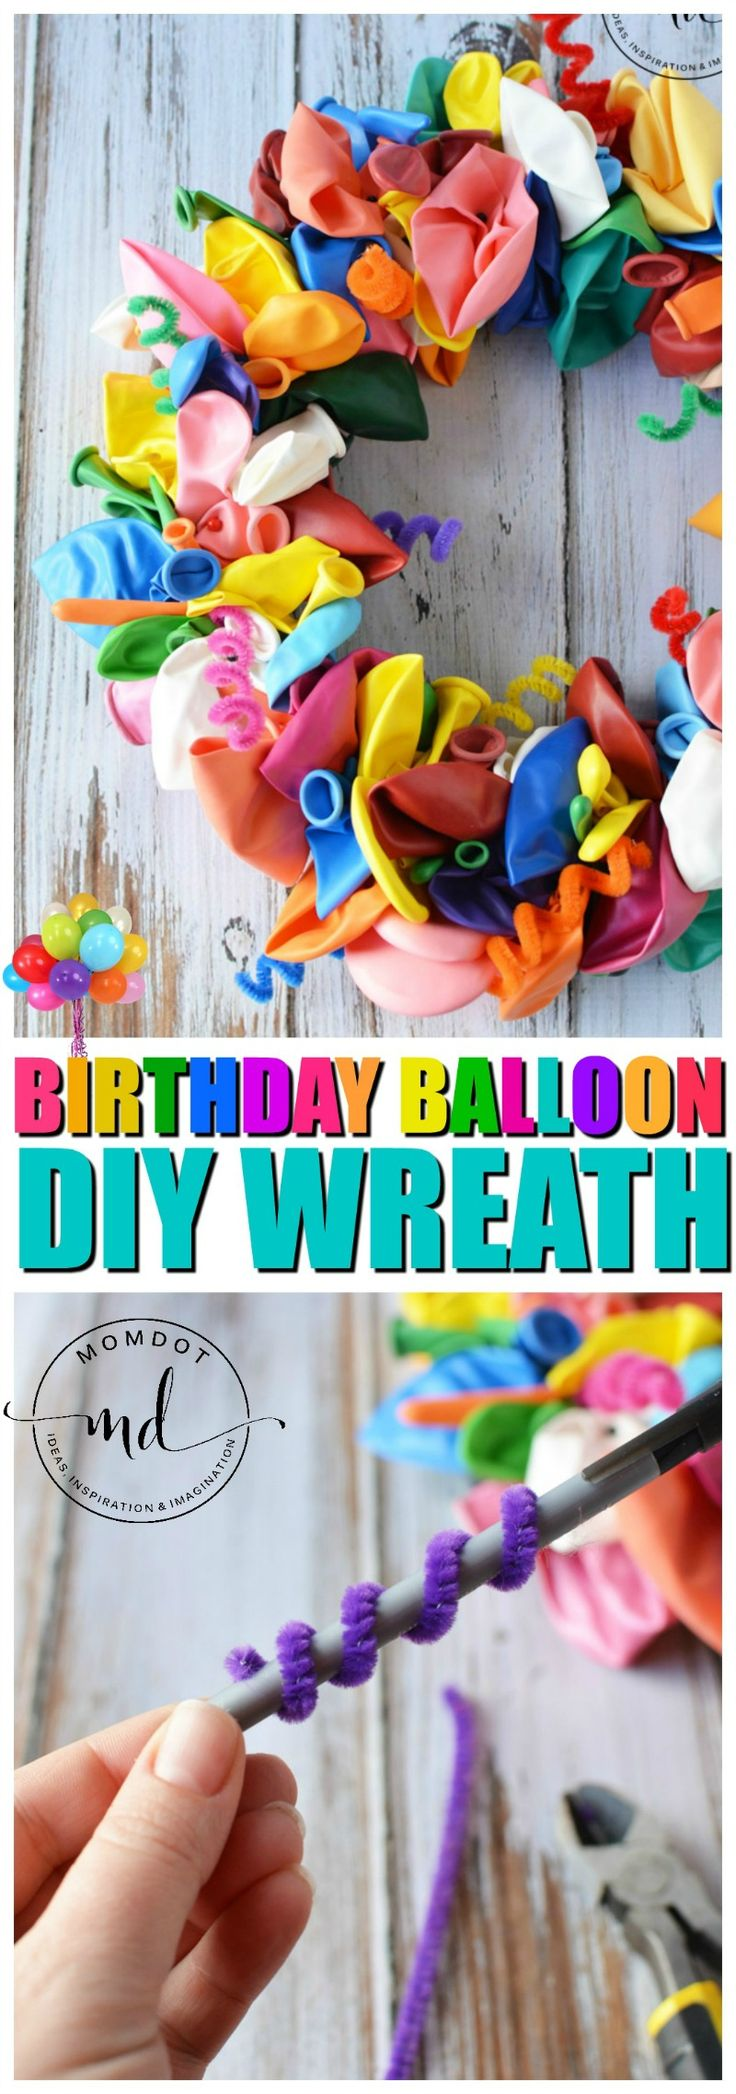 DIY Wreath, How to make a Balloon Wreath perfect to announce a birthday with a variety of ballooon sizes and pipe cleaner curls, So cute! Plus other wreath tutorials step by step